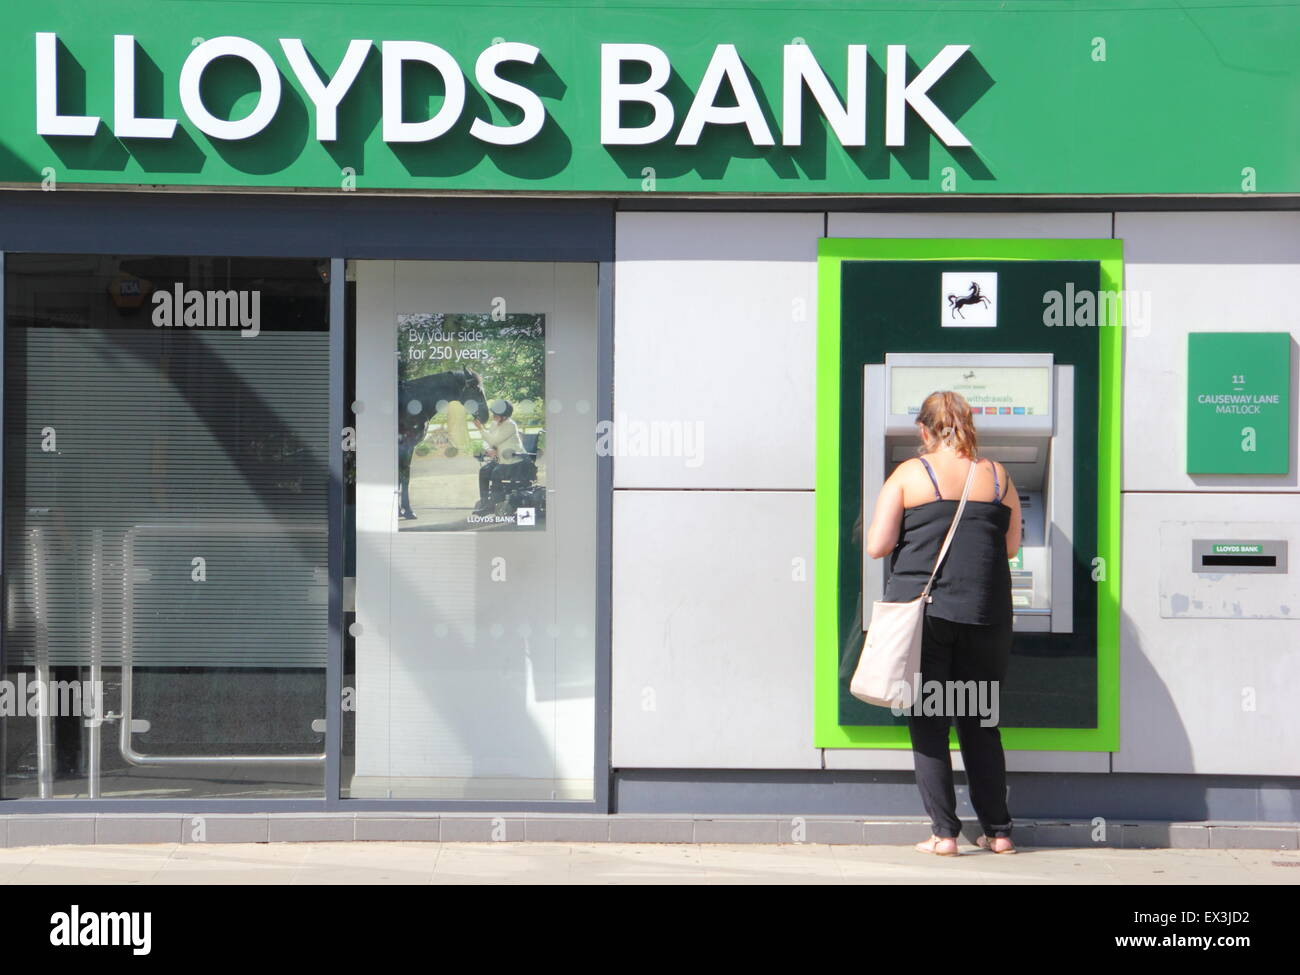 A woman uses an ATM cashpoint machine at a Lloyds Bank branch in Derbyshire England UK - Stock Image